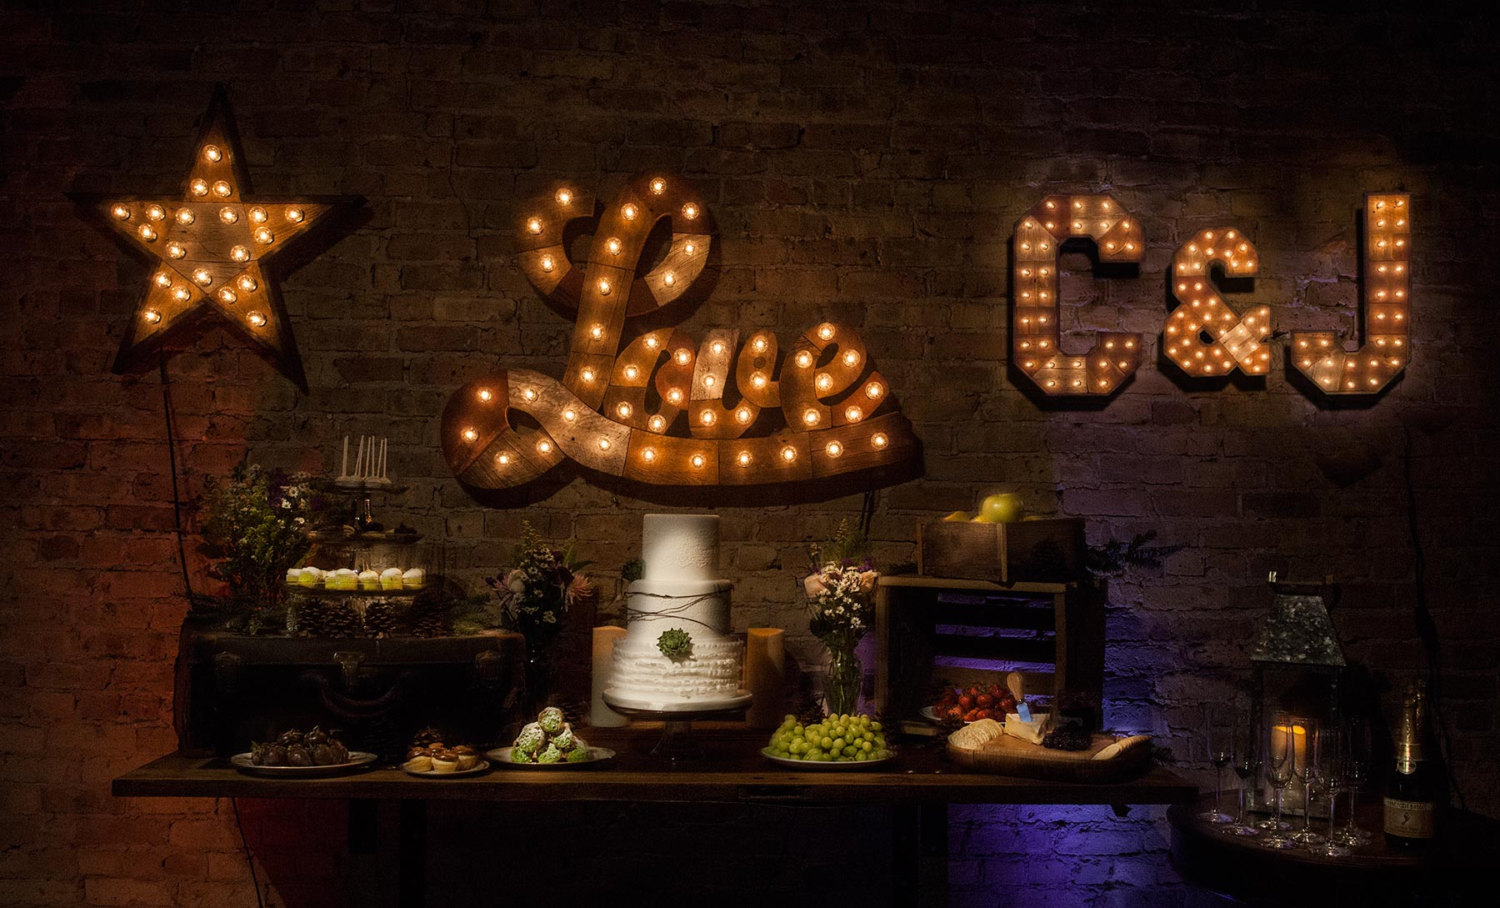 reclaimed-wood-marquee-letters-w-lights-perfect-for-weddings-shabby-chic-salvaged-barn-wood-letter-love-restaurant-home-decor-rustic-59b72b0f1